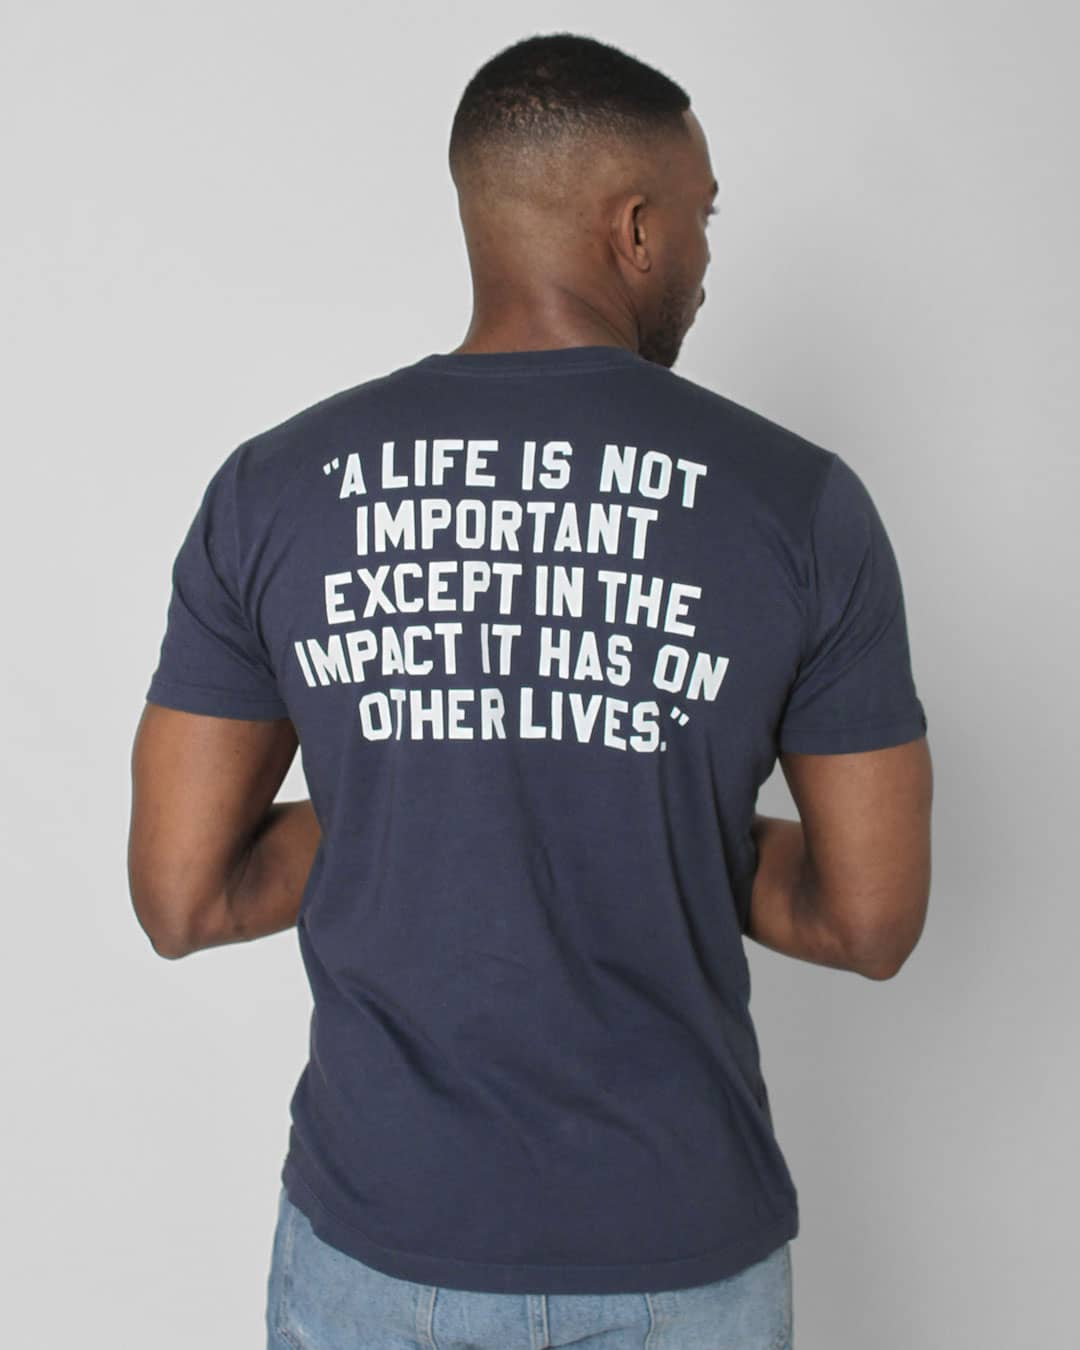 Jackie Robinson 42 Quote Tee - Roots of Inc dba Roots of Fight